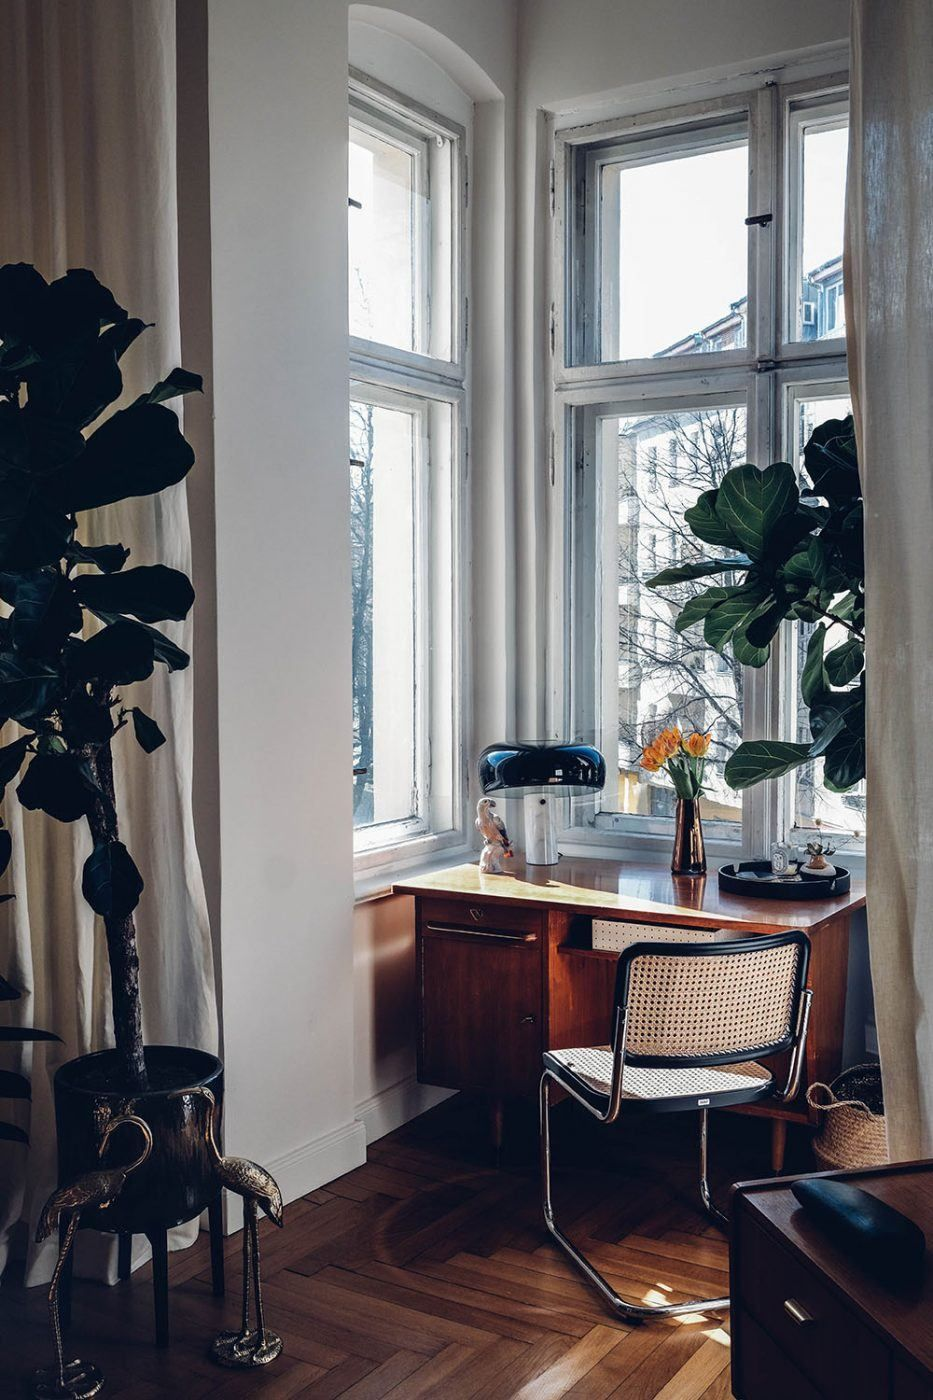 Home Tour with Tim Labenda & Hannes Krause